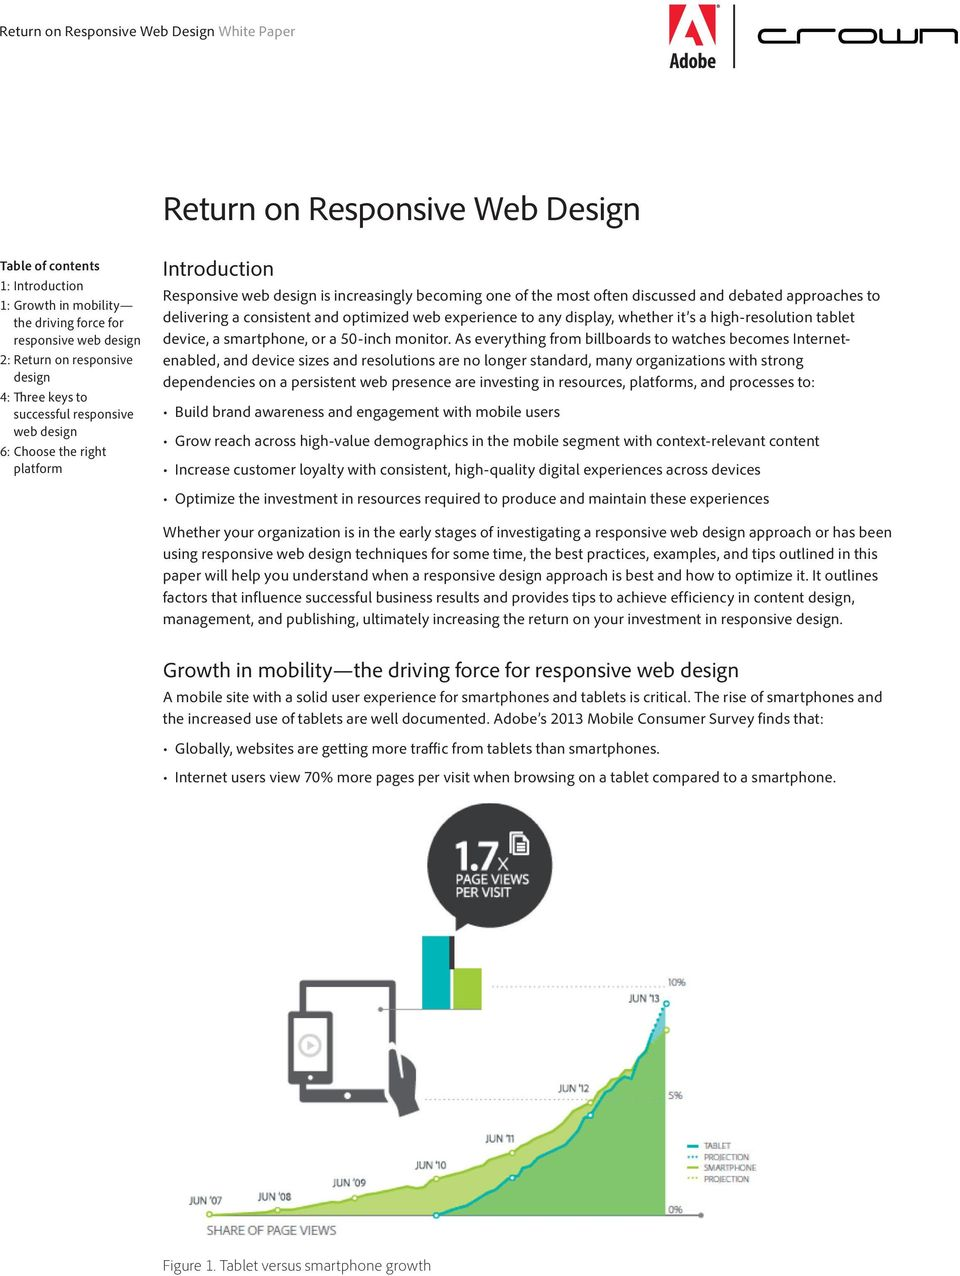 optimized web experience to any display, whether it s a high-resolution tablet device, a smartphone, or a 50-inch monitor.